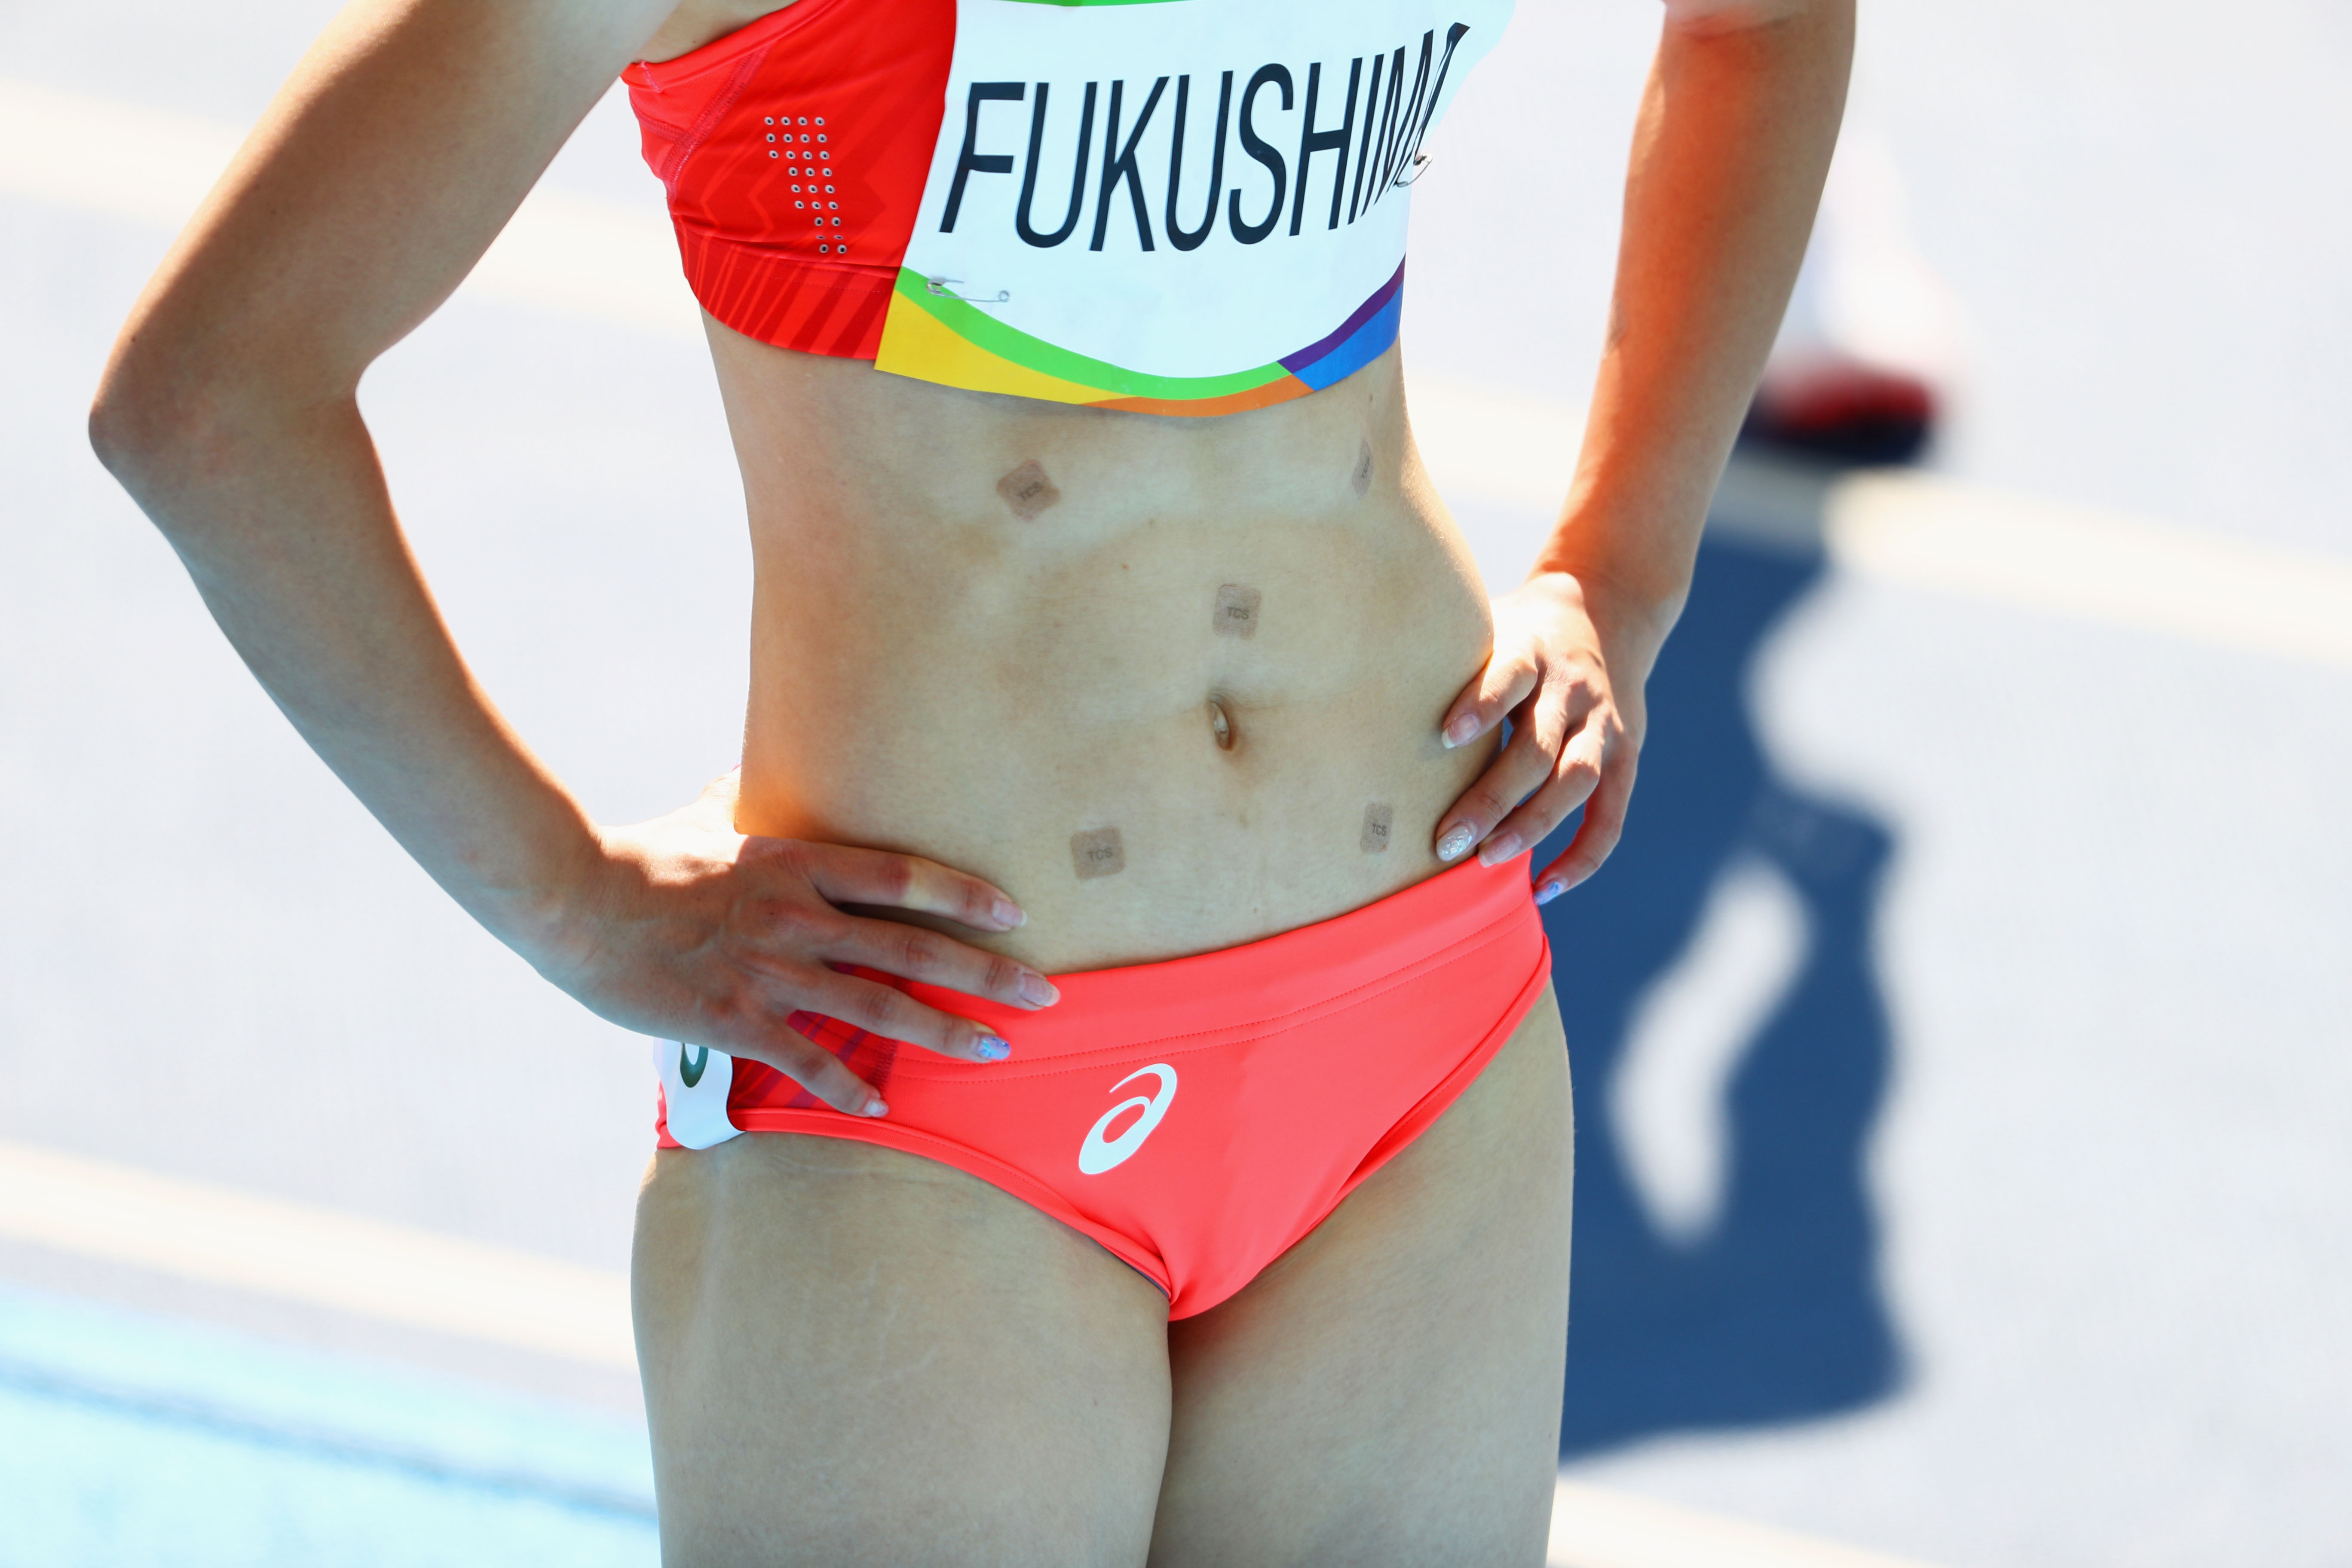 GettyImages 589707276 Heres Why Japans Chisato Fukushima Wore Patches While Running In Rio